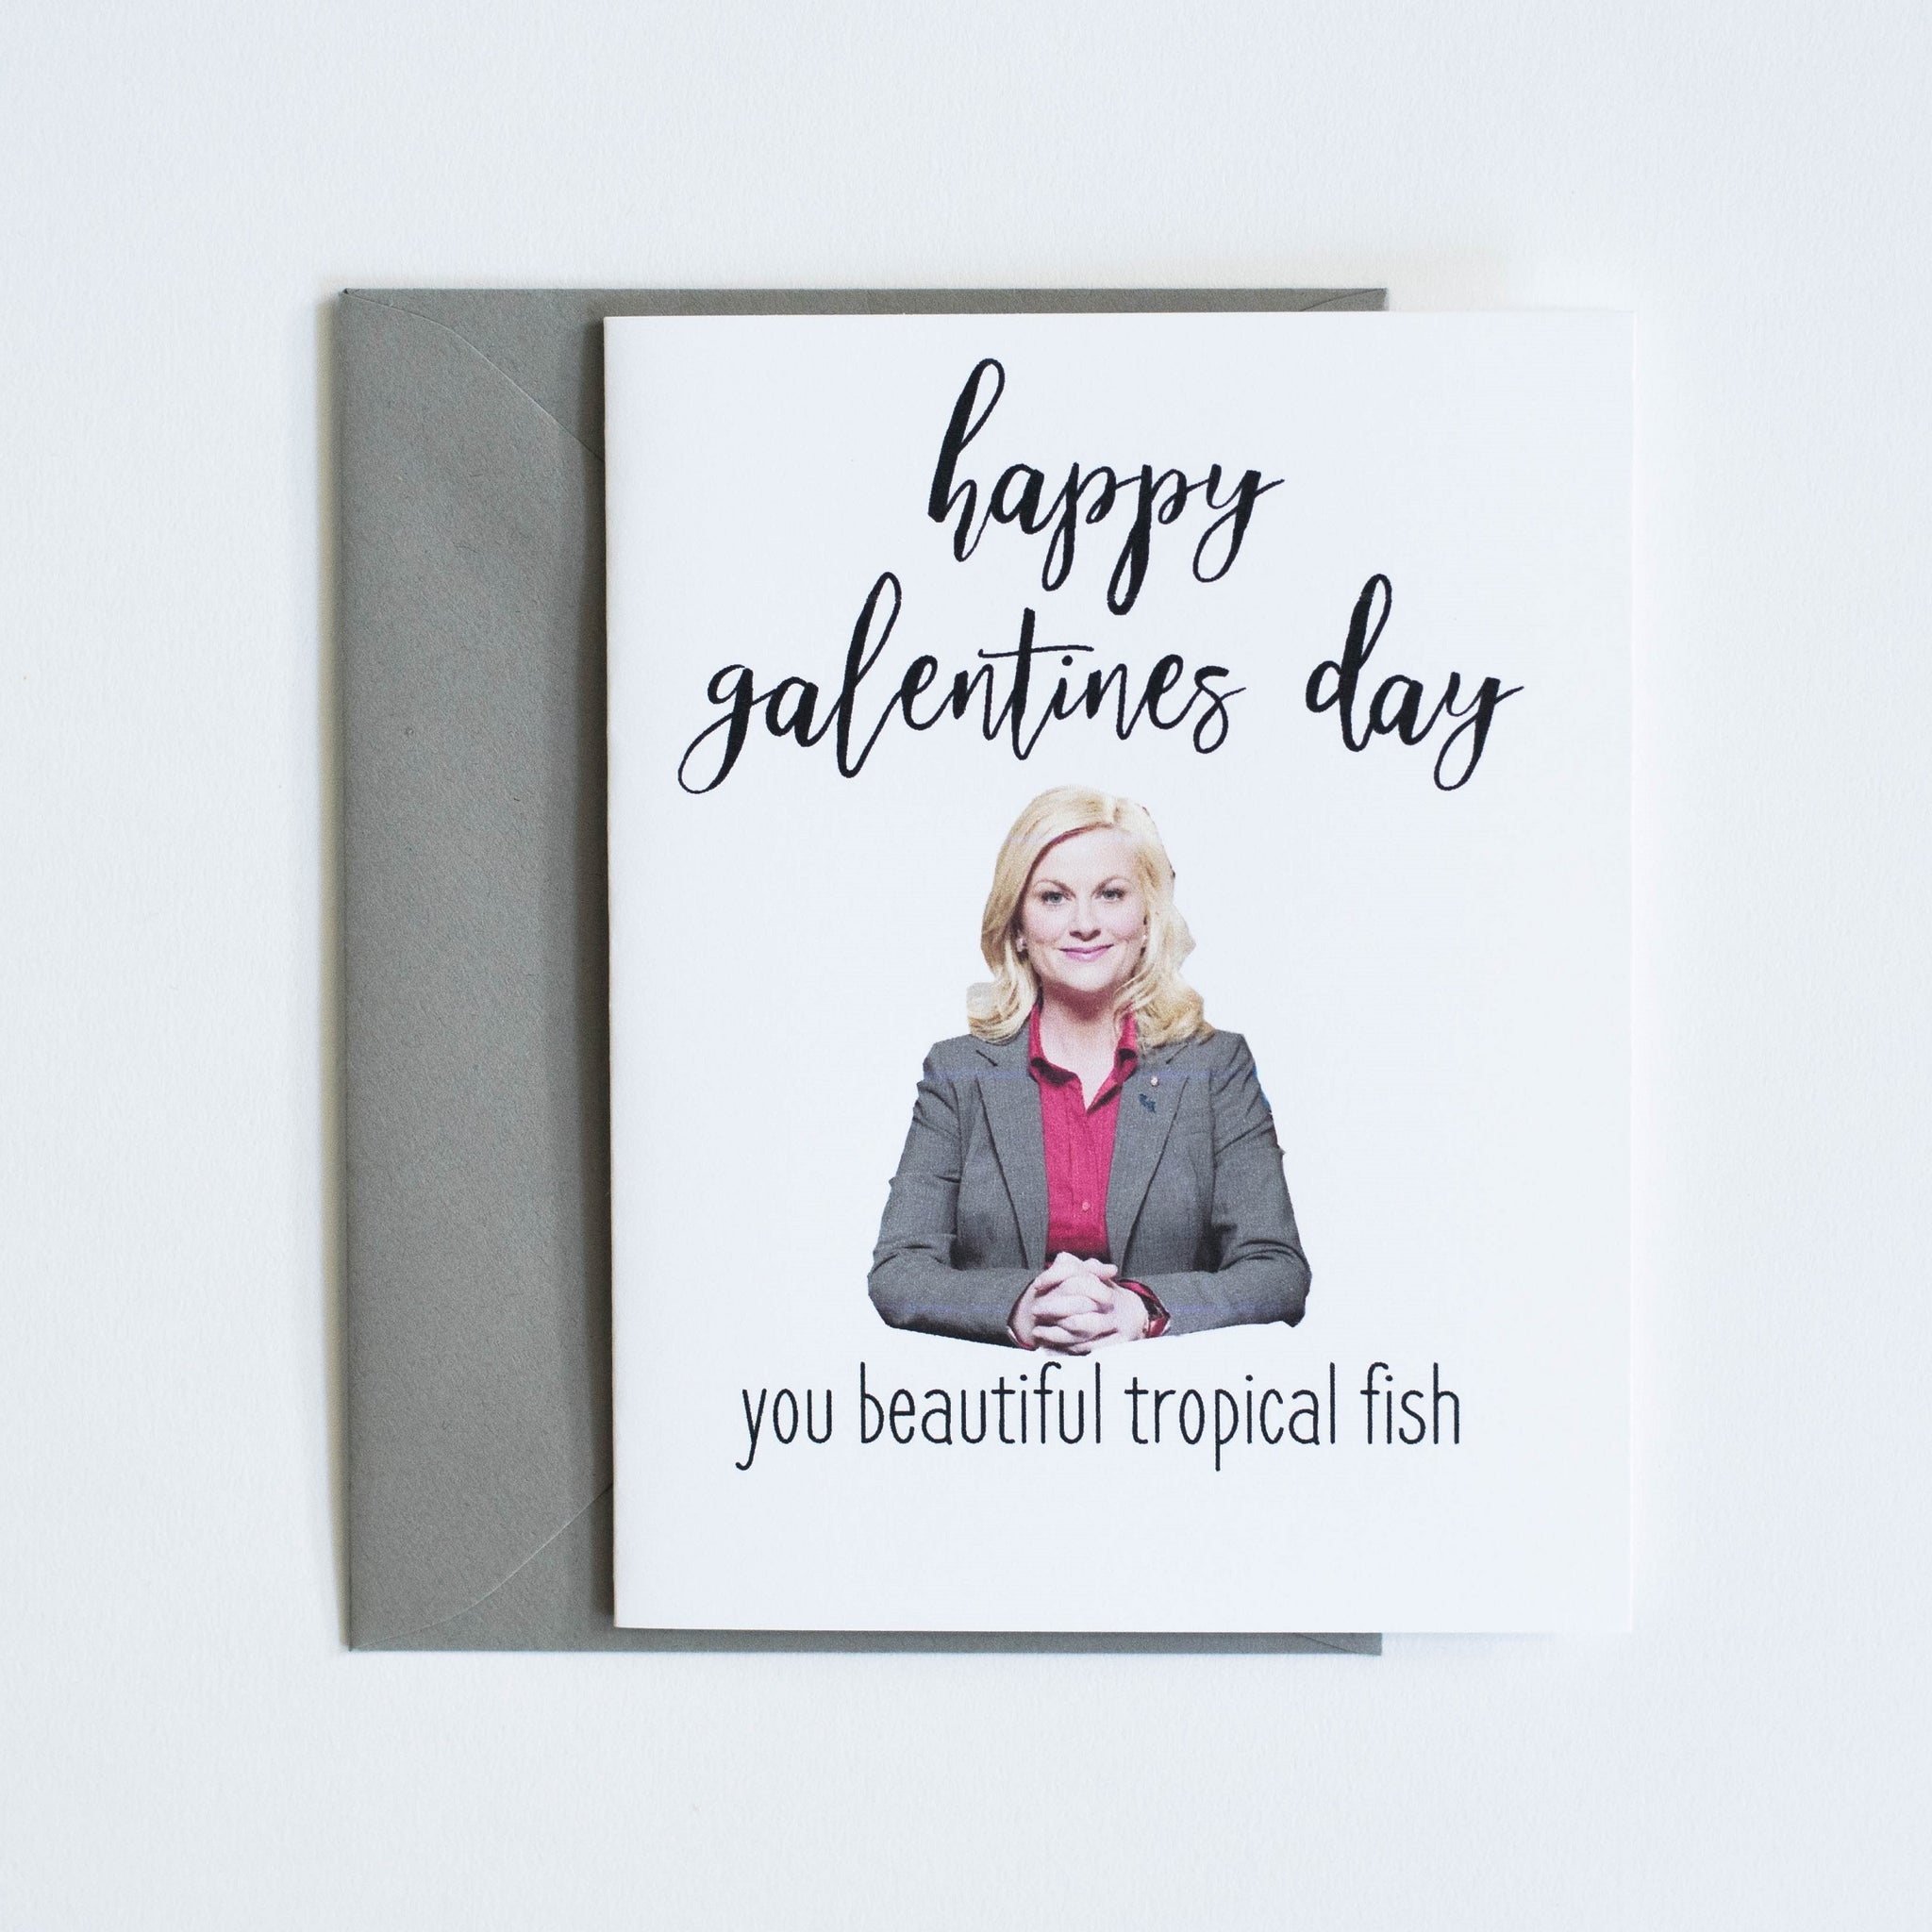 Card: Happy Galentines Day you beautiful tropical fish